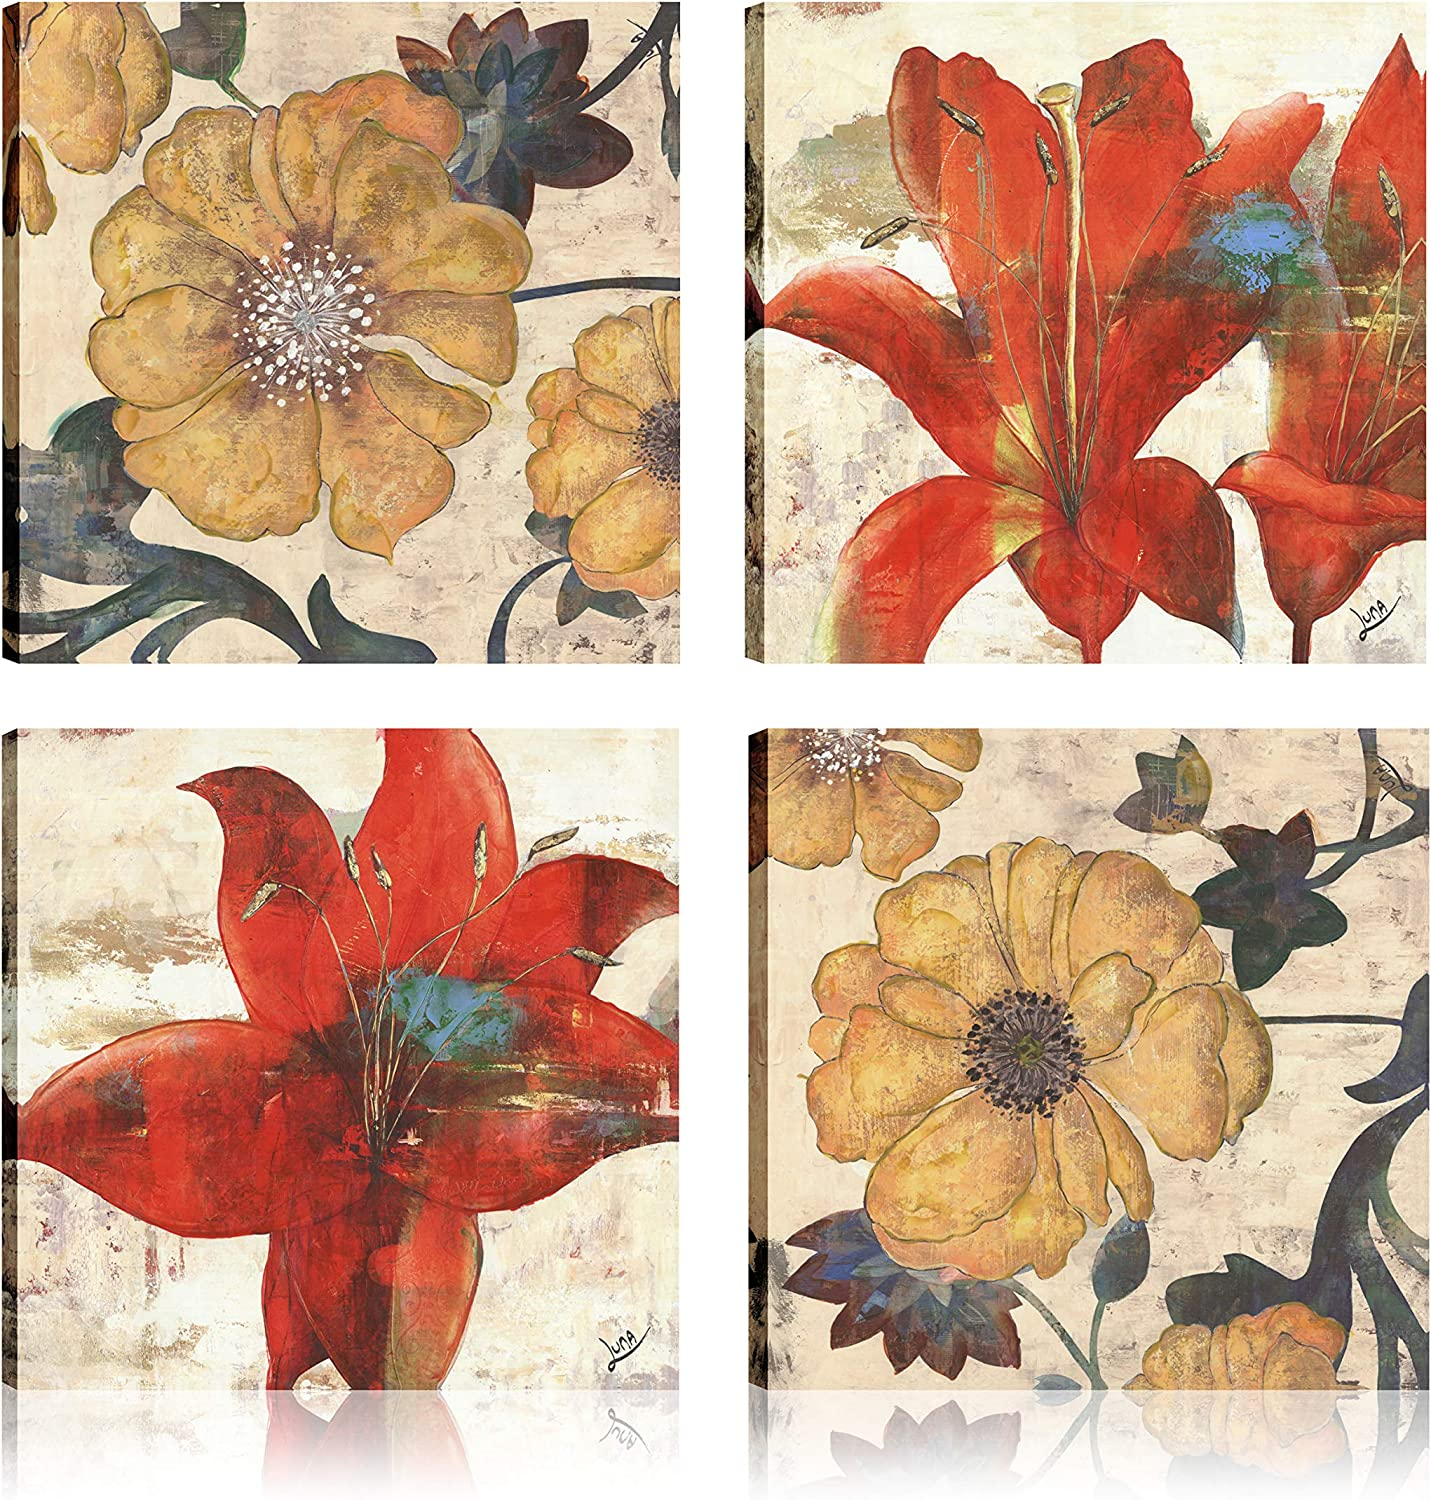 Art Maison Floral Blossom Giclee Gallery Wrapped Canvas Wall Art|Modern Décor for Home and Office | Ready to Hang |Set of 4(12x12INCH), Yellow, Green, Maroon